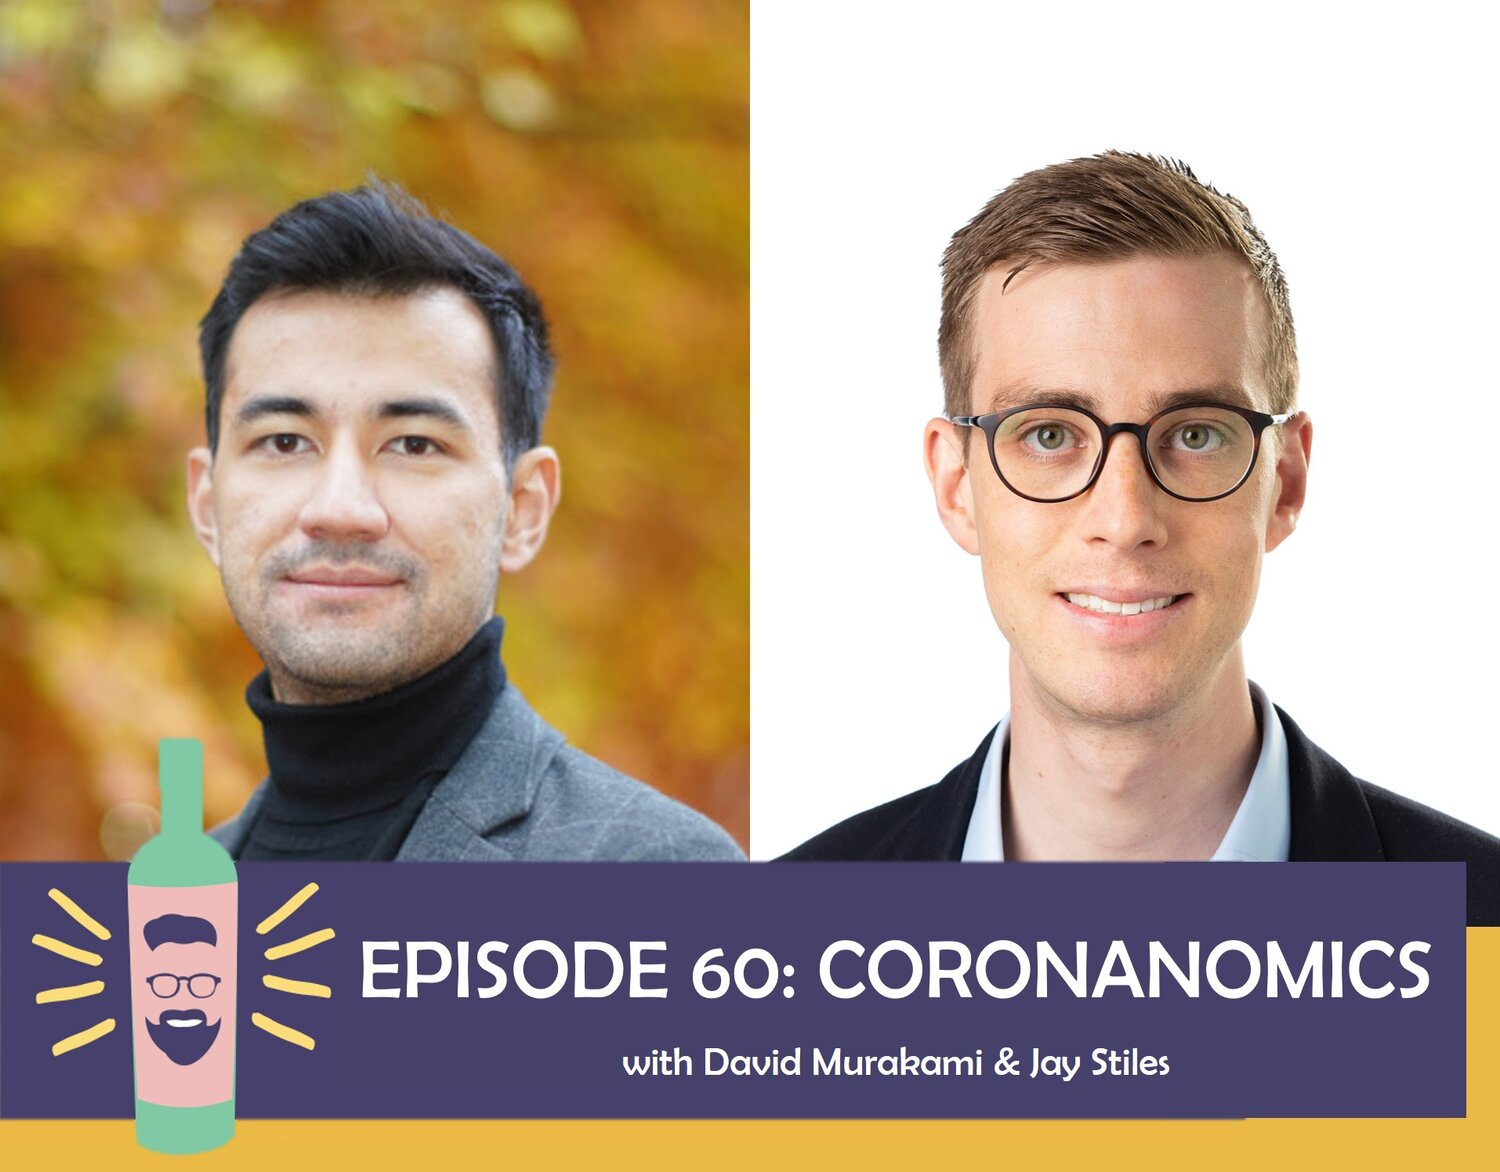 Episode 60 - Coronanomics with David Murakami and Jay Stiles